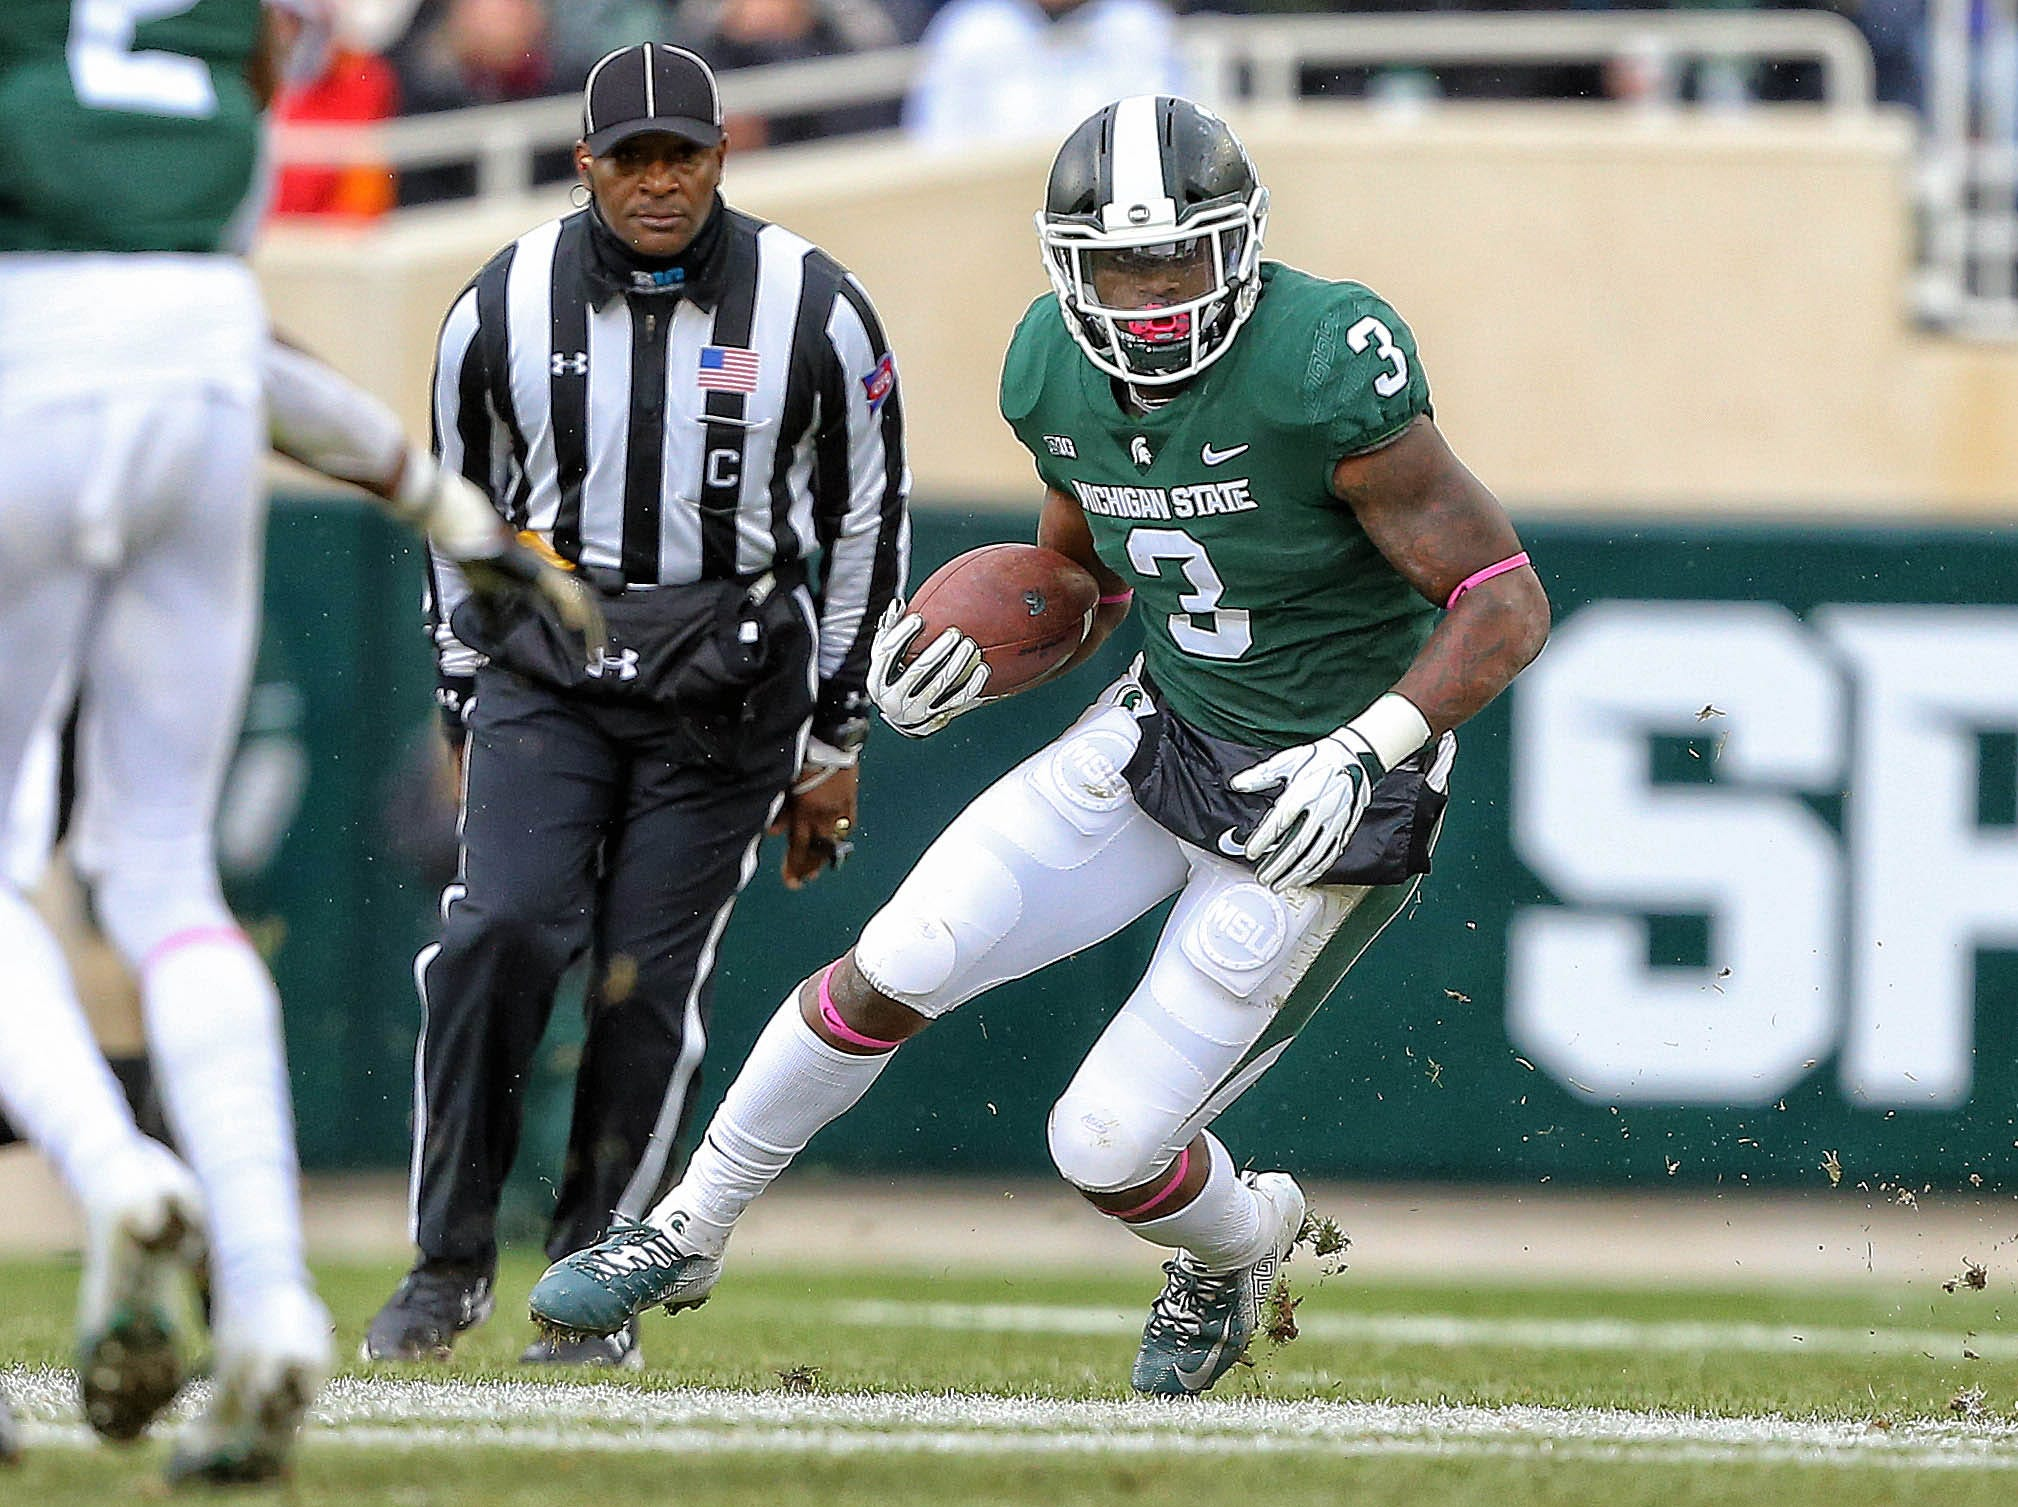 Oct 27, 2018; East Lansing, MI, USA; Michigan State Spartans running back LJ Scott (3) runs the ball during the first half of a game against the Purdue Boilermakers at Spartan Stadium. Mandatory Credit: Mike Carter-USA TODAY Sports